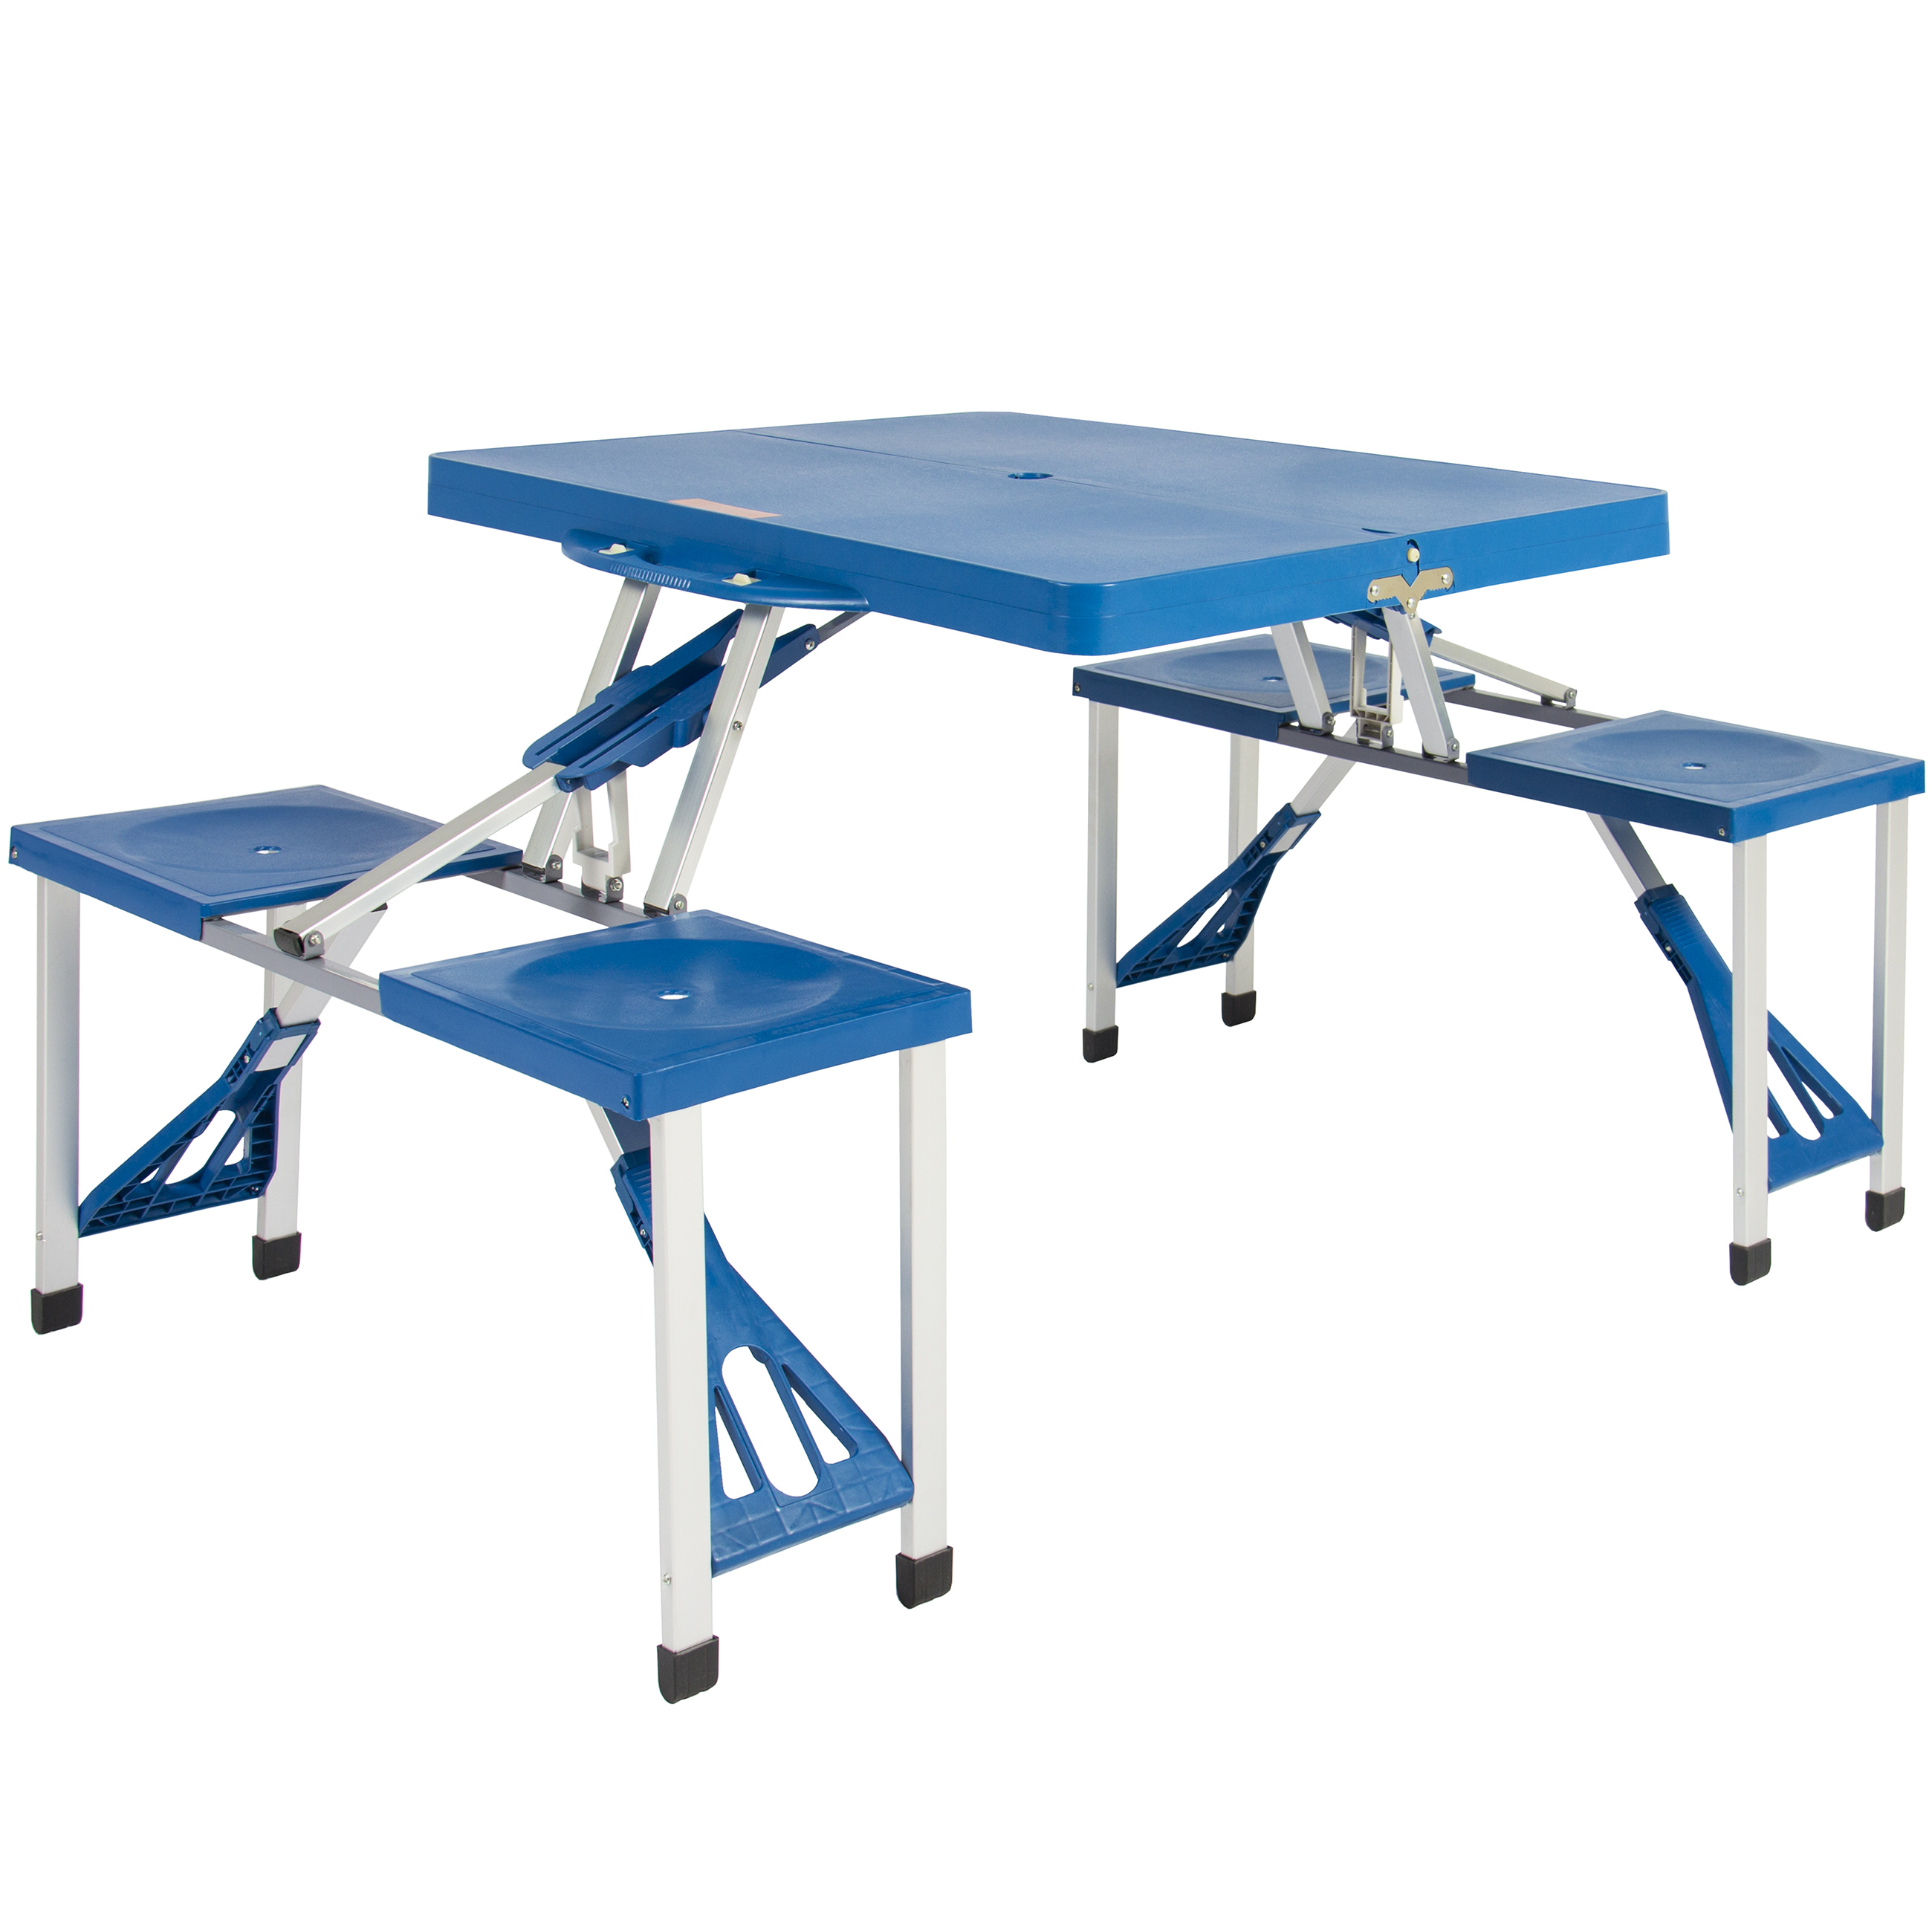 Best Choice Products Kids Outdoor Portable Plastic Folding Picnic Table Camping W/ 4 Seats